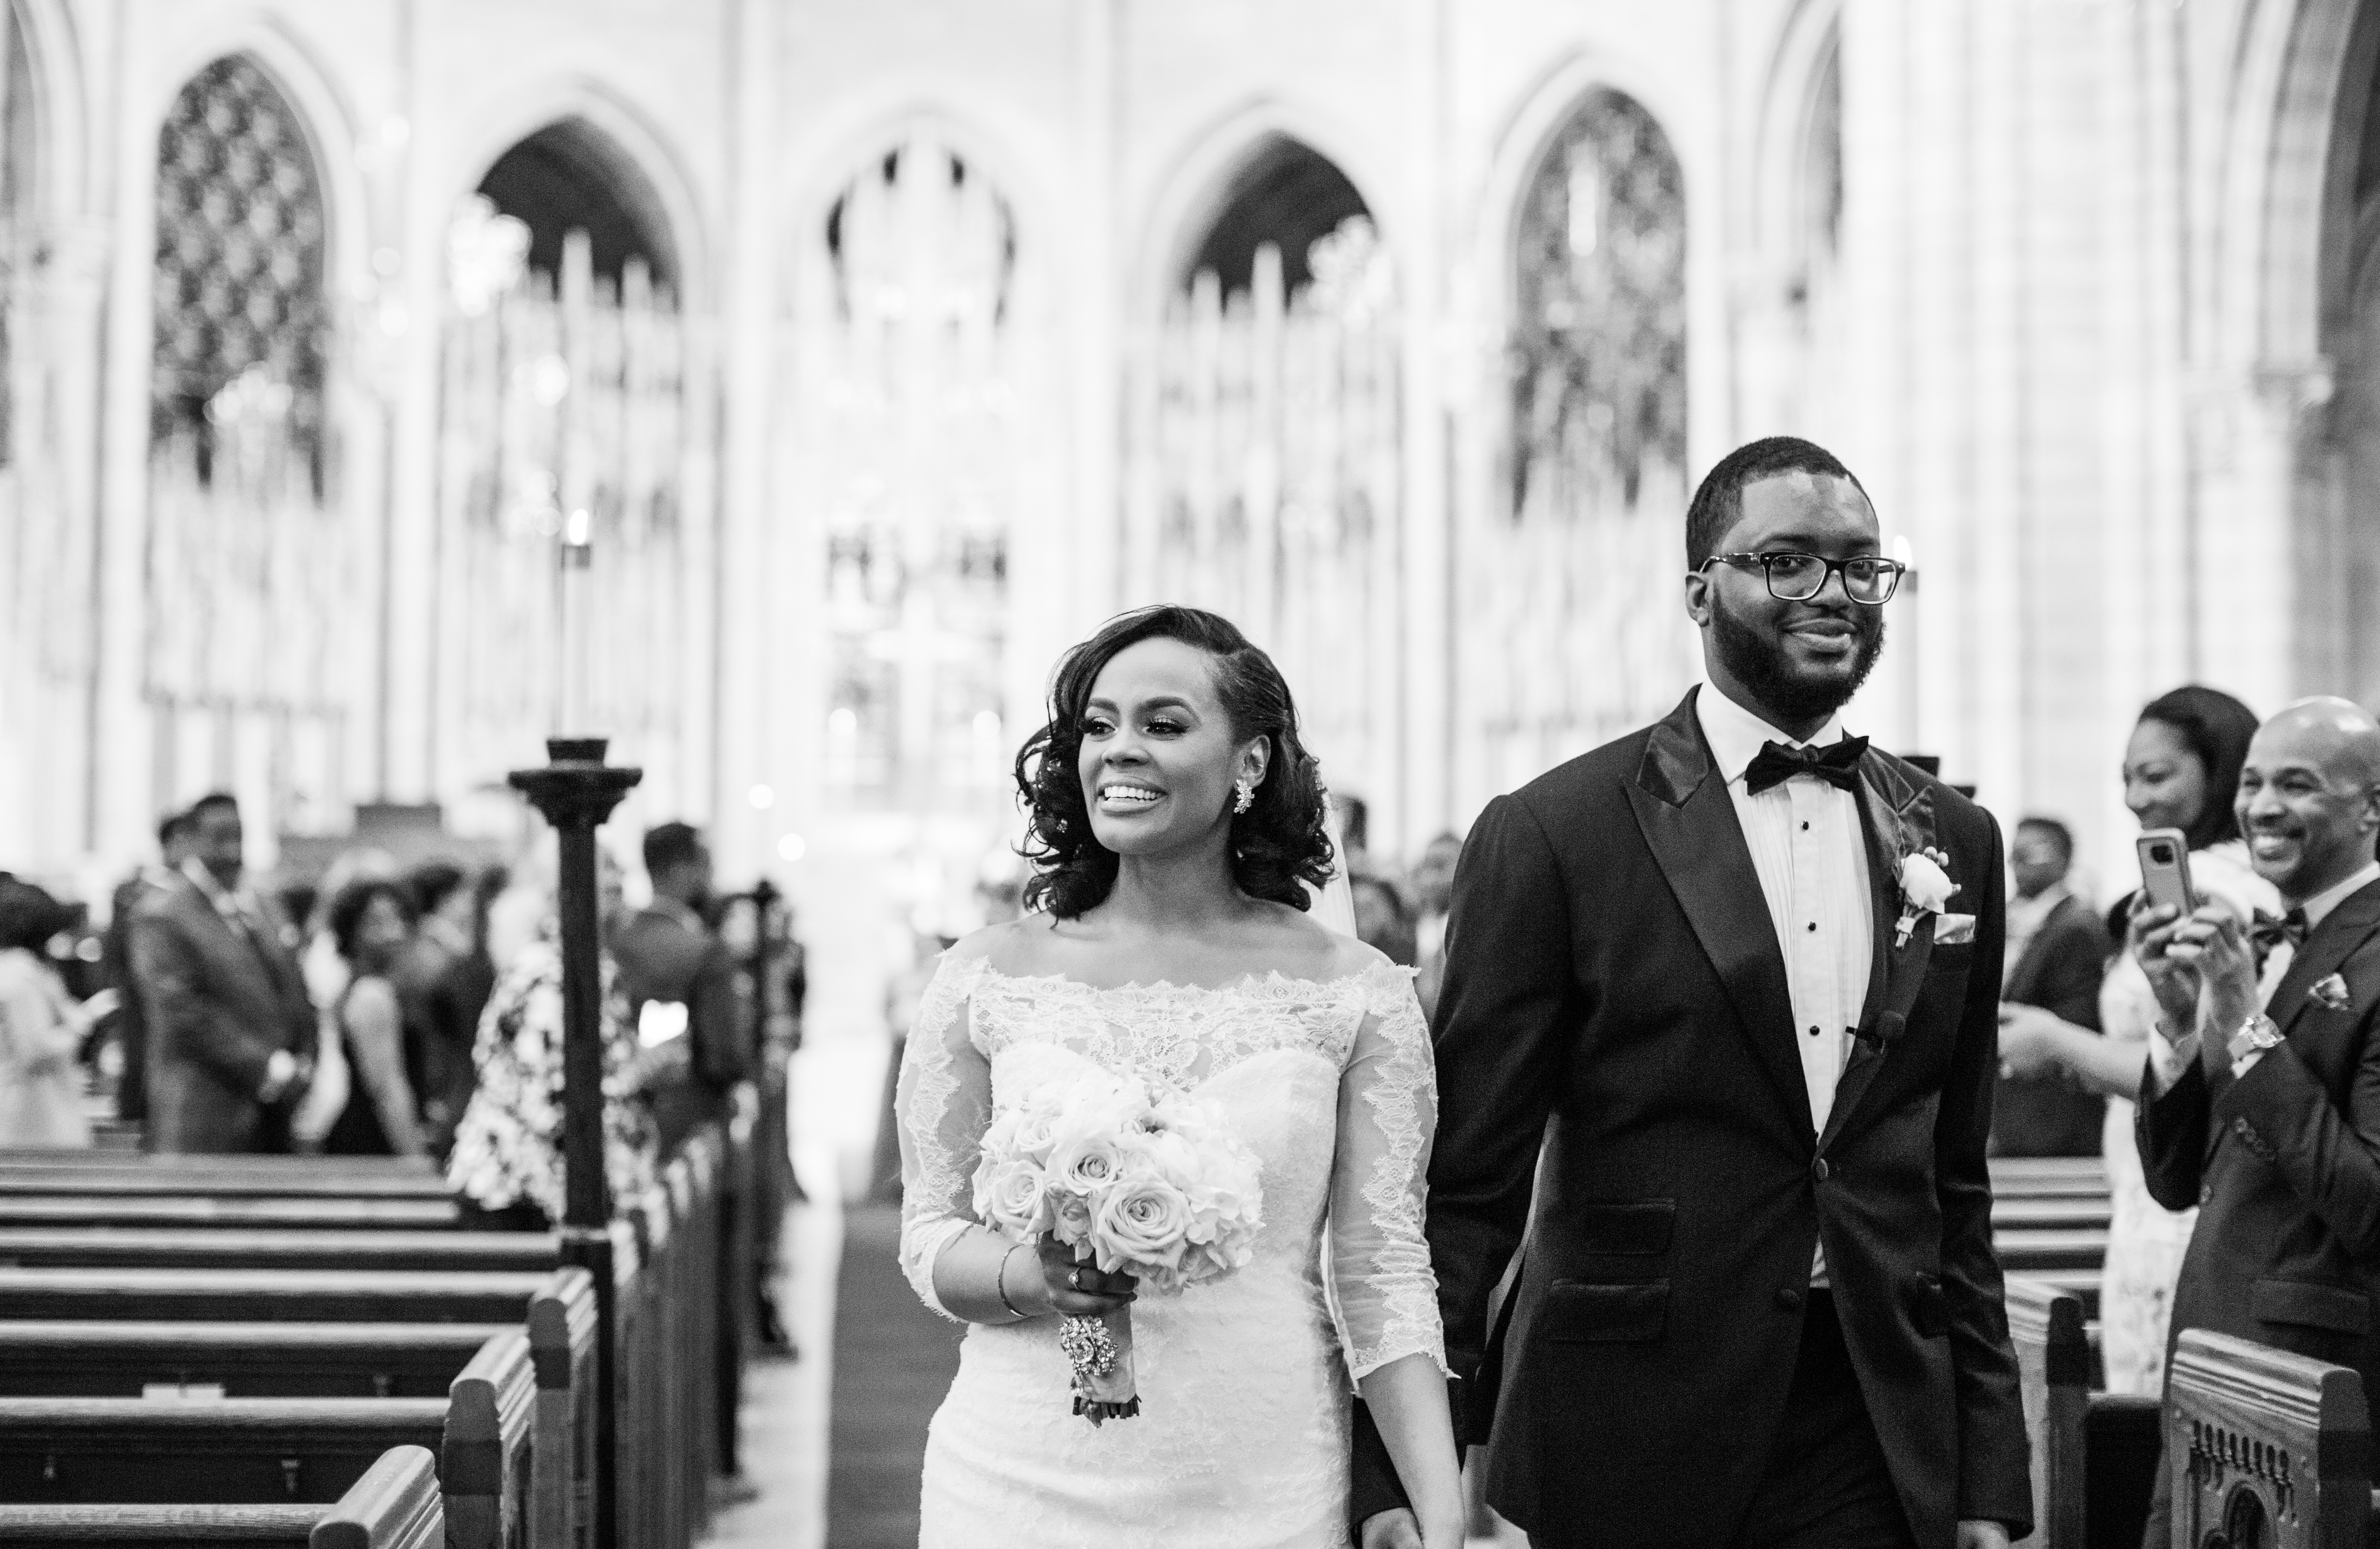 Chic black couple wedding day riverside church